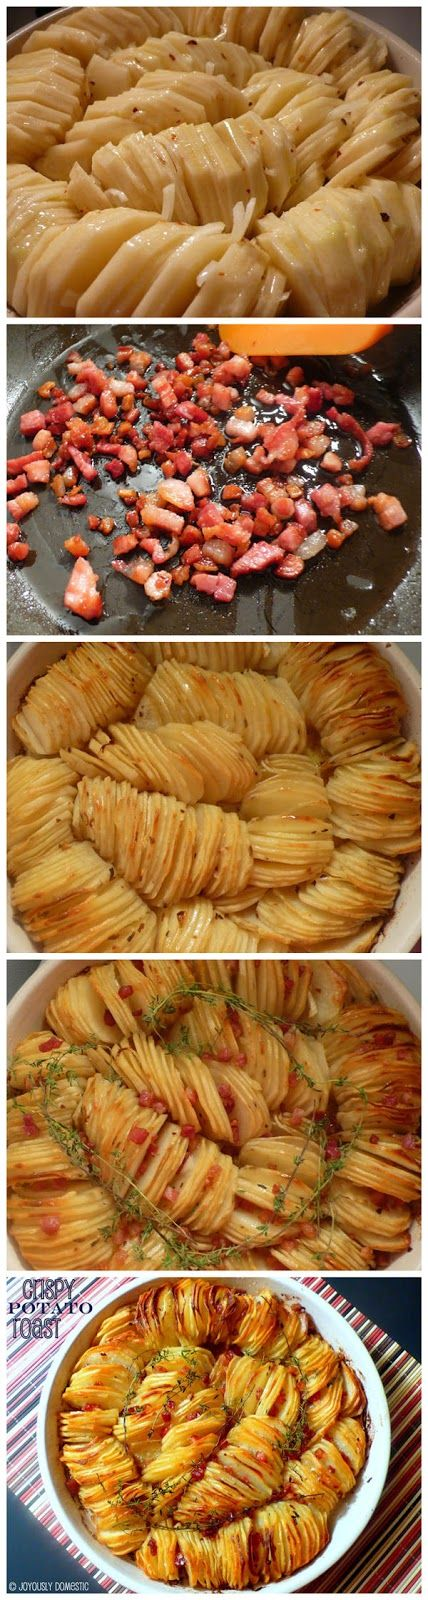 If you have a mandolin, it would make quick work of slicing these potatoes...so pretty to add to an oven meal....a nice addition to breakfa...